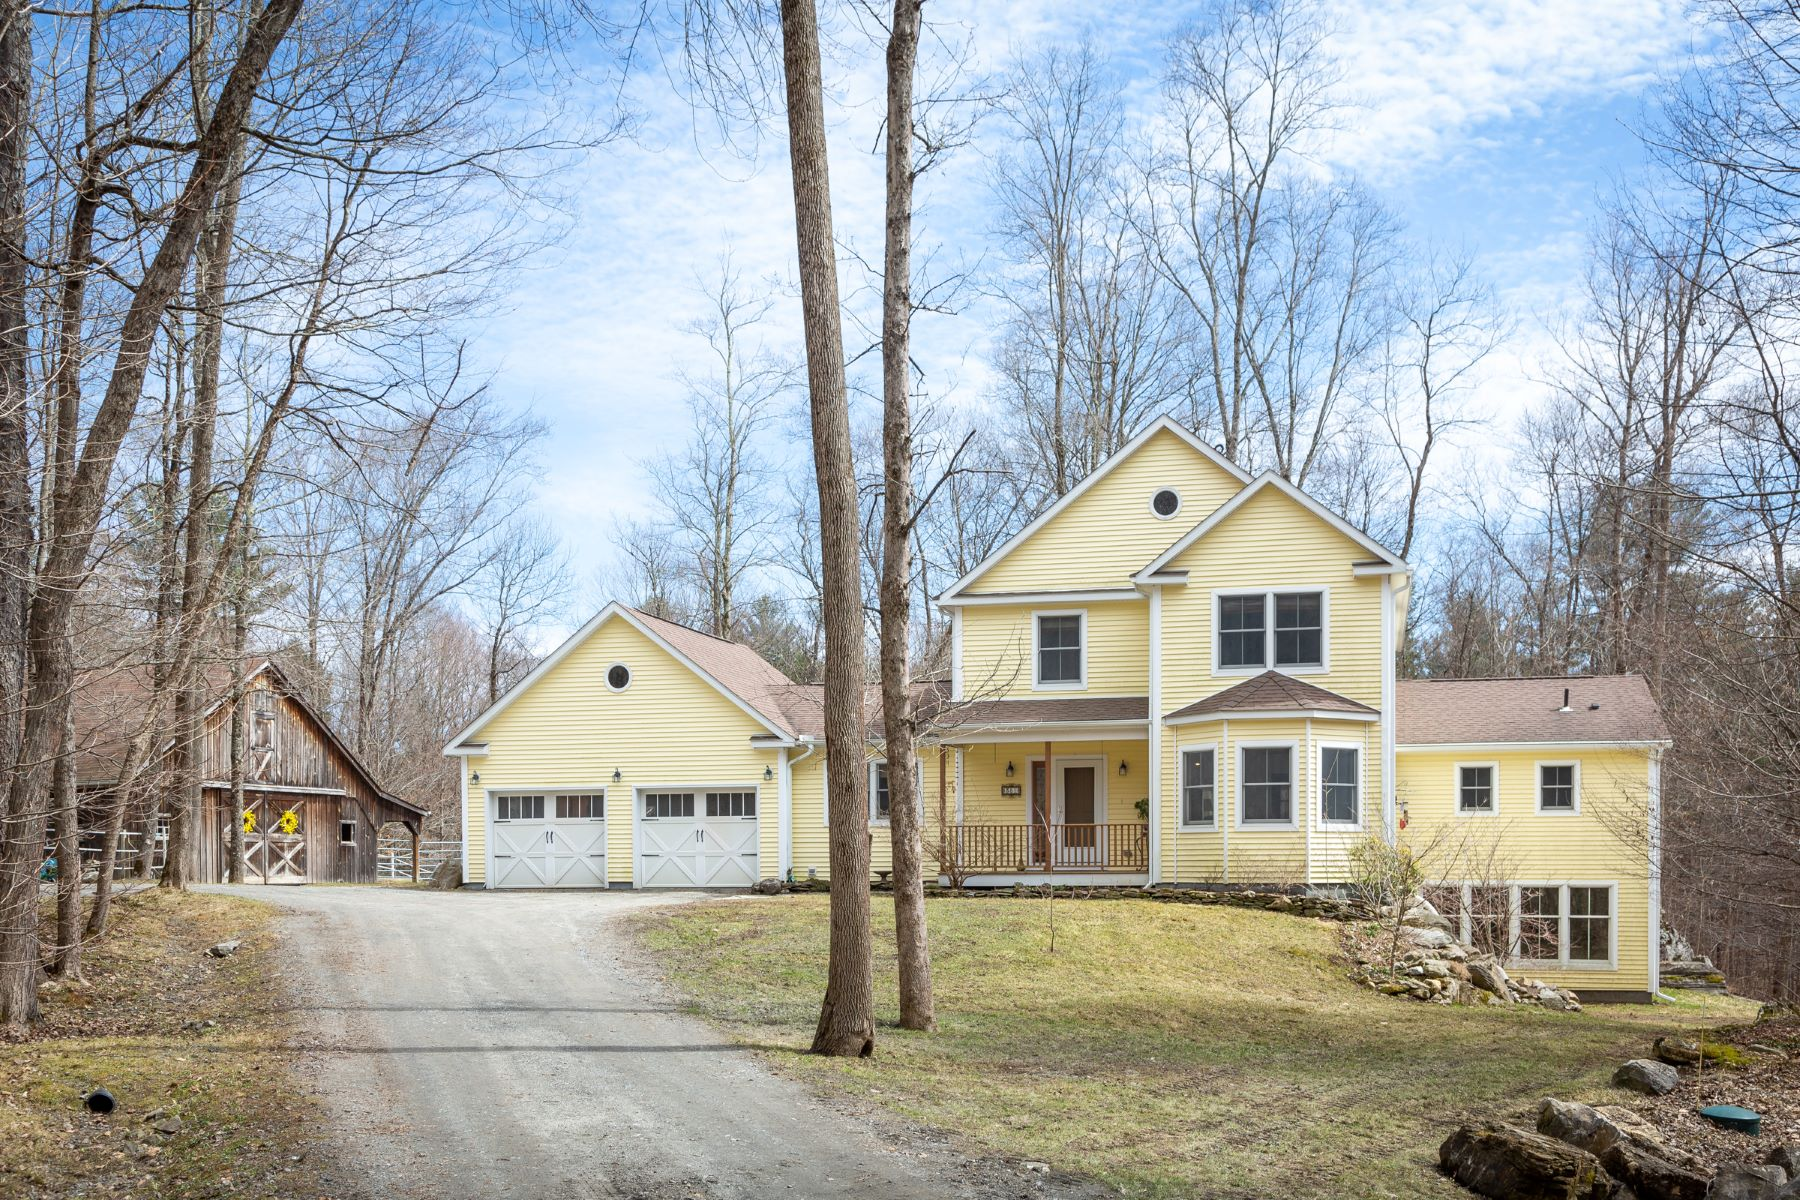 Single Family Home for Active at Welcome to Singing Tree Farm 351 West Rd Richmond, Massachusetts 01254 United States